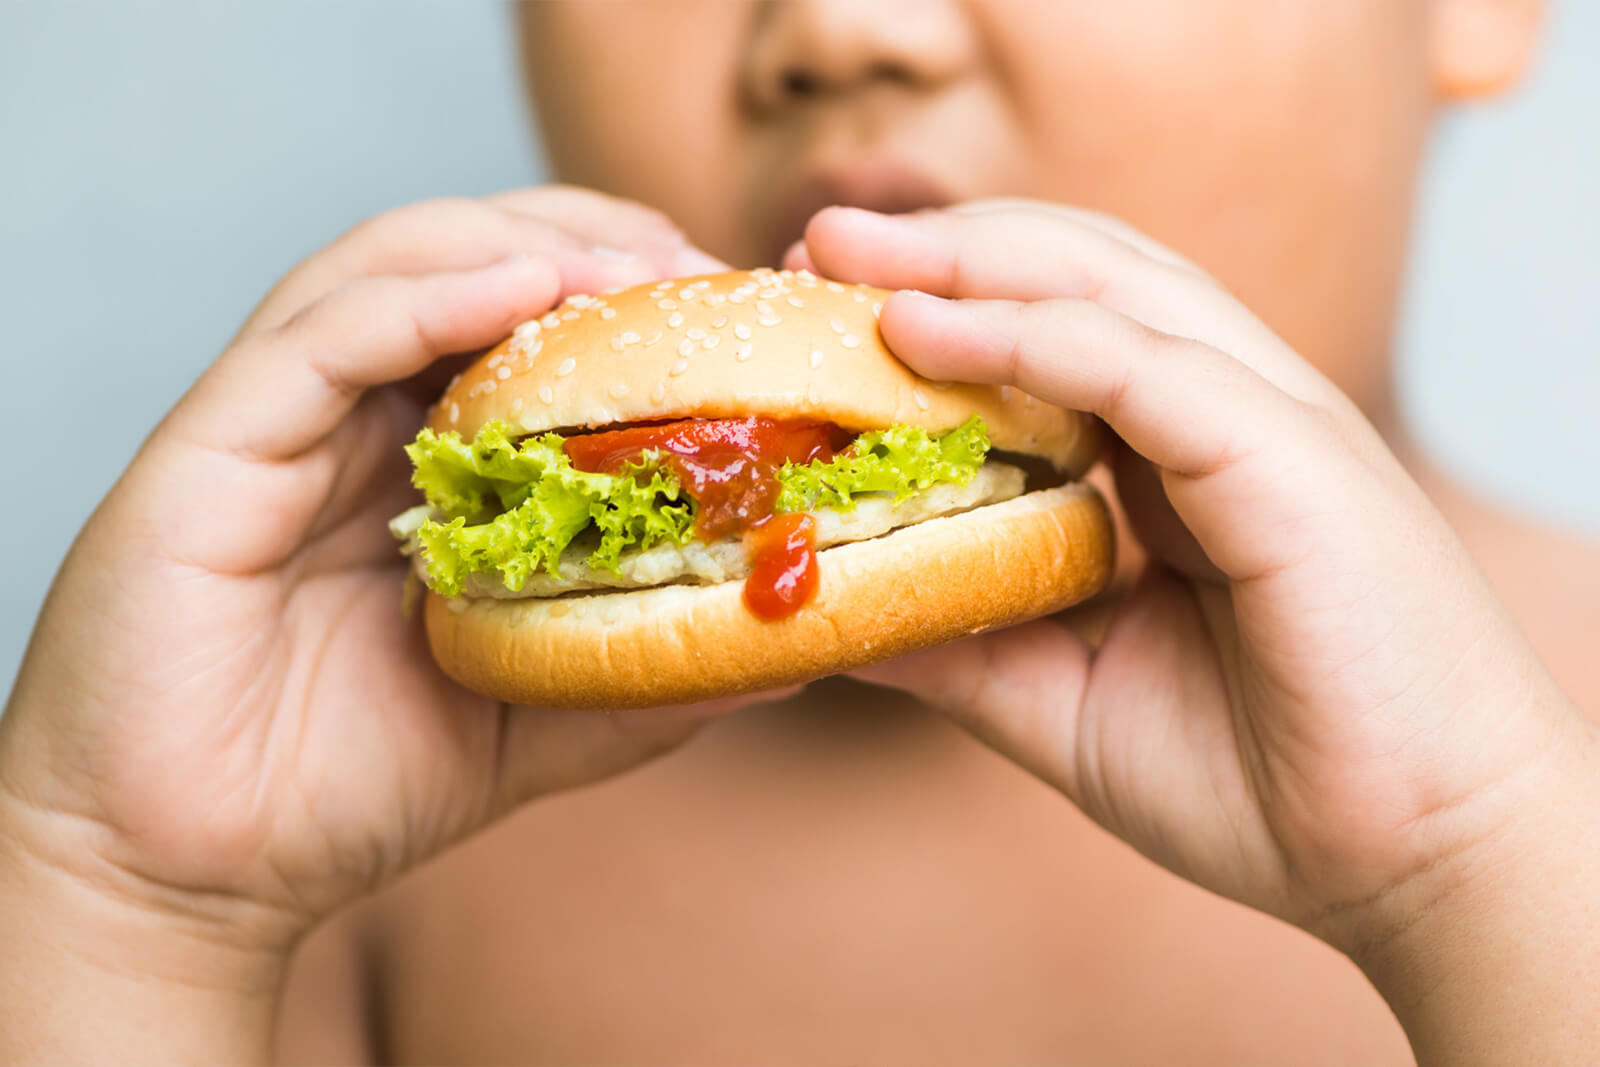 overweight child holding a burger displaying victim of overnutrition